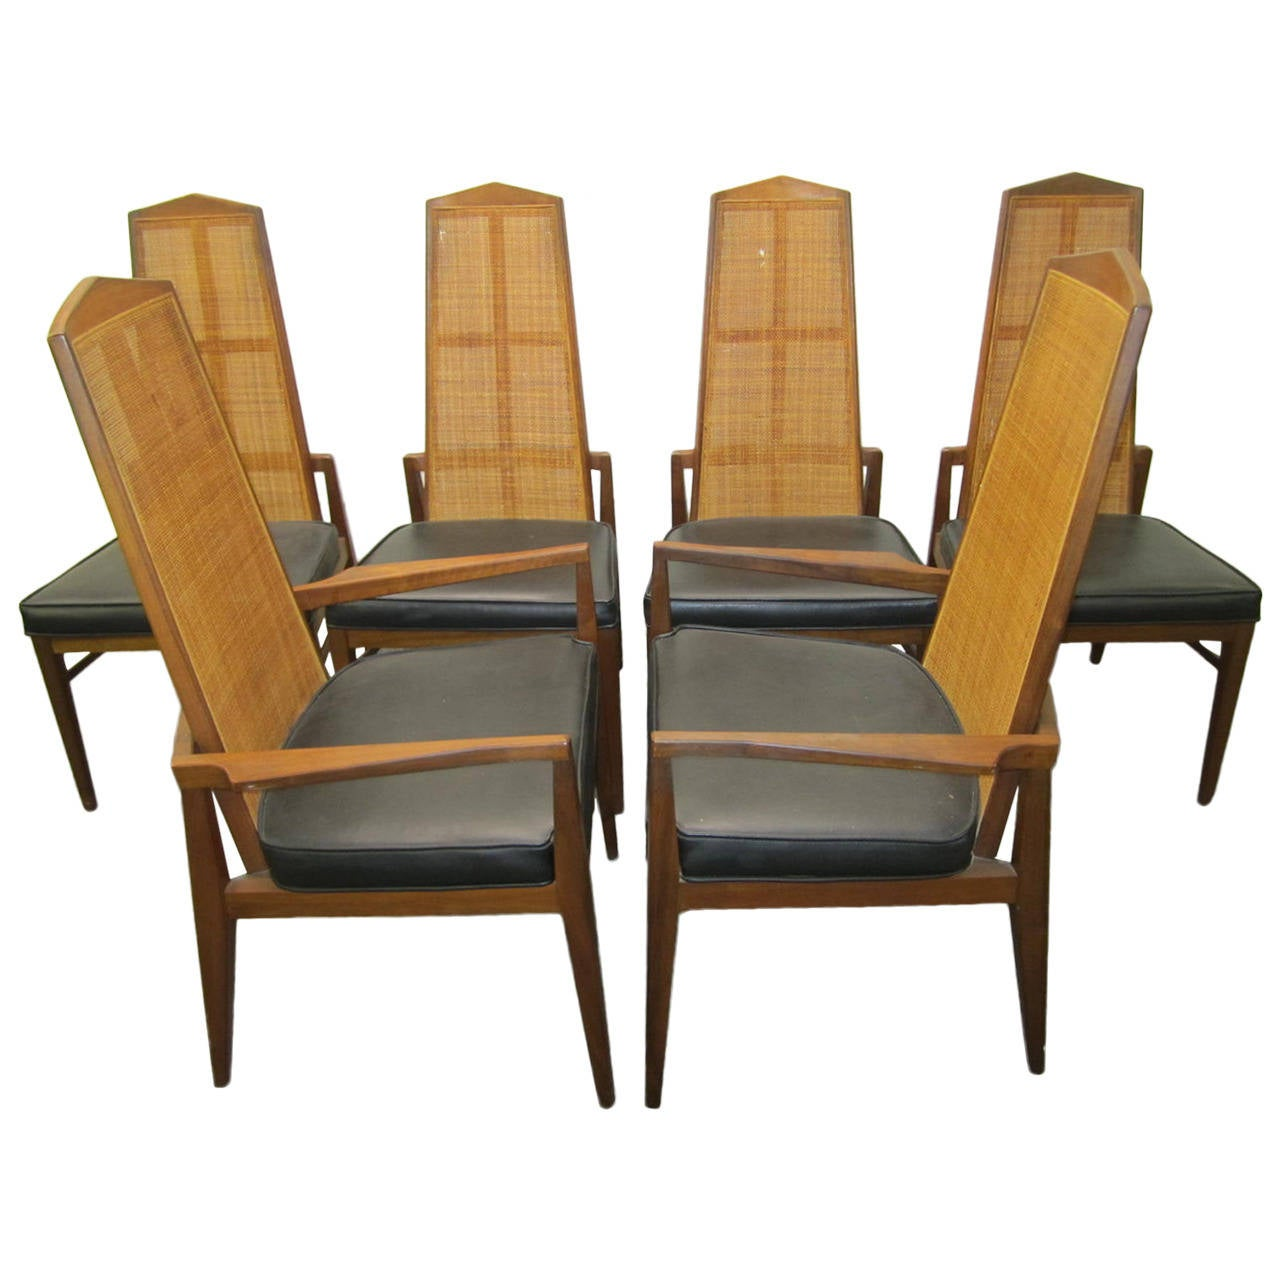 Six Walnut Foster And McDavid Cane Back Dining Chairs Mid Century Modern For Sale